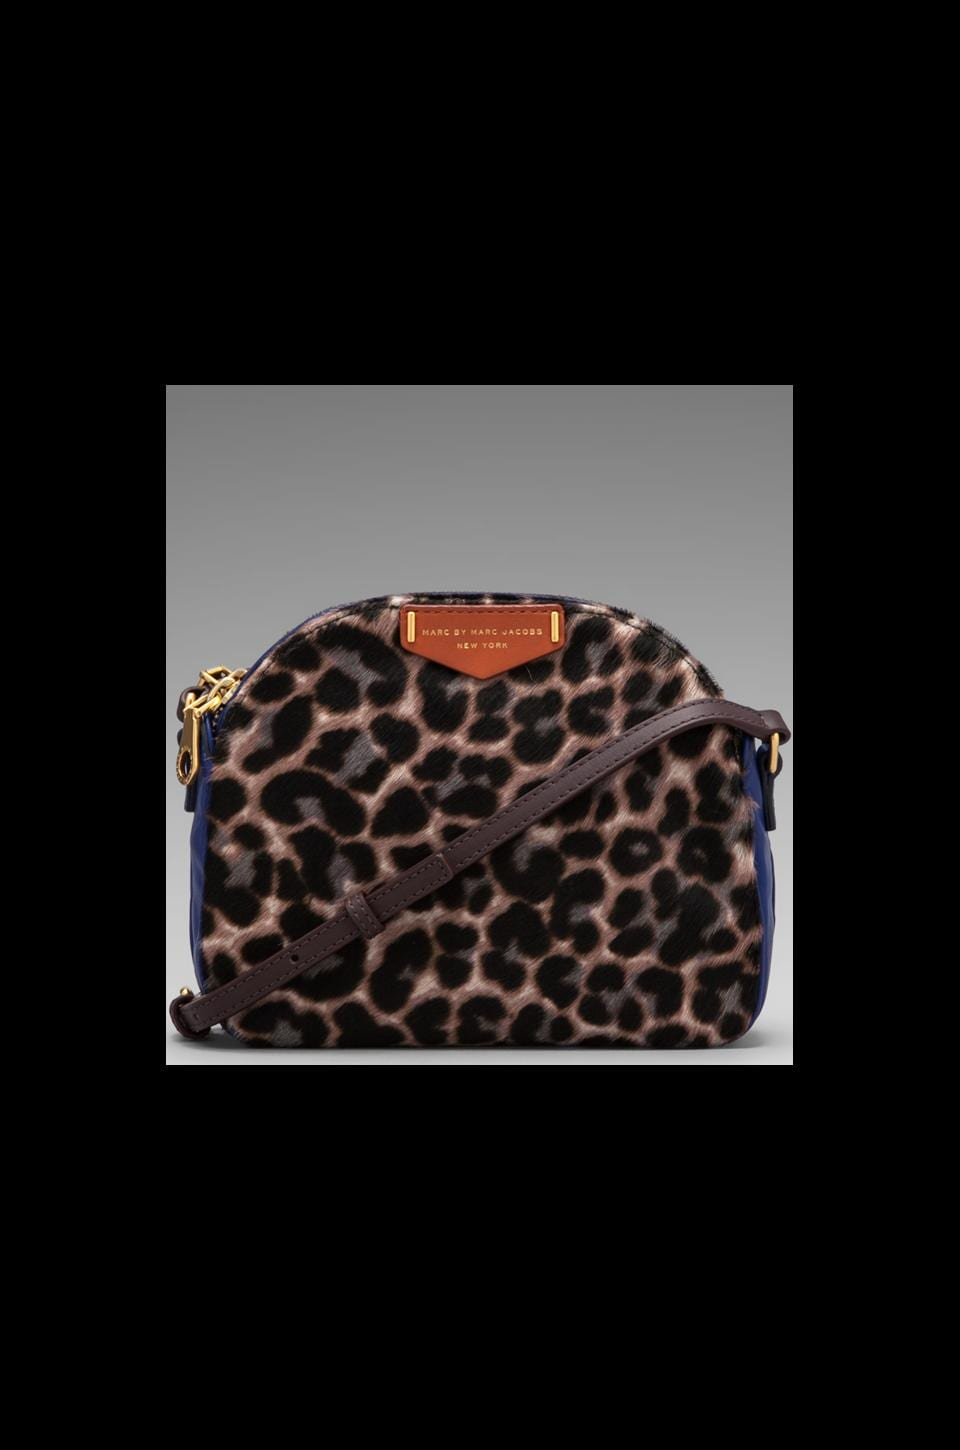 Marc by Marc Jacobs Downtown Lola Leopard Crossbody in Royal Purple Multi